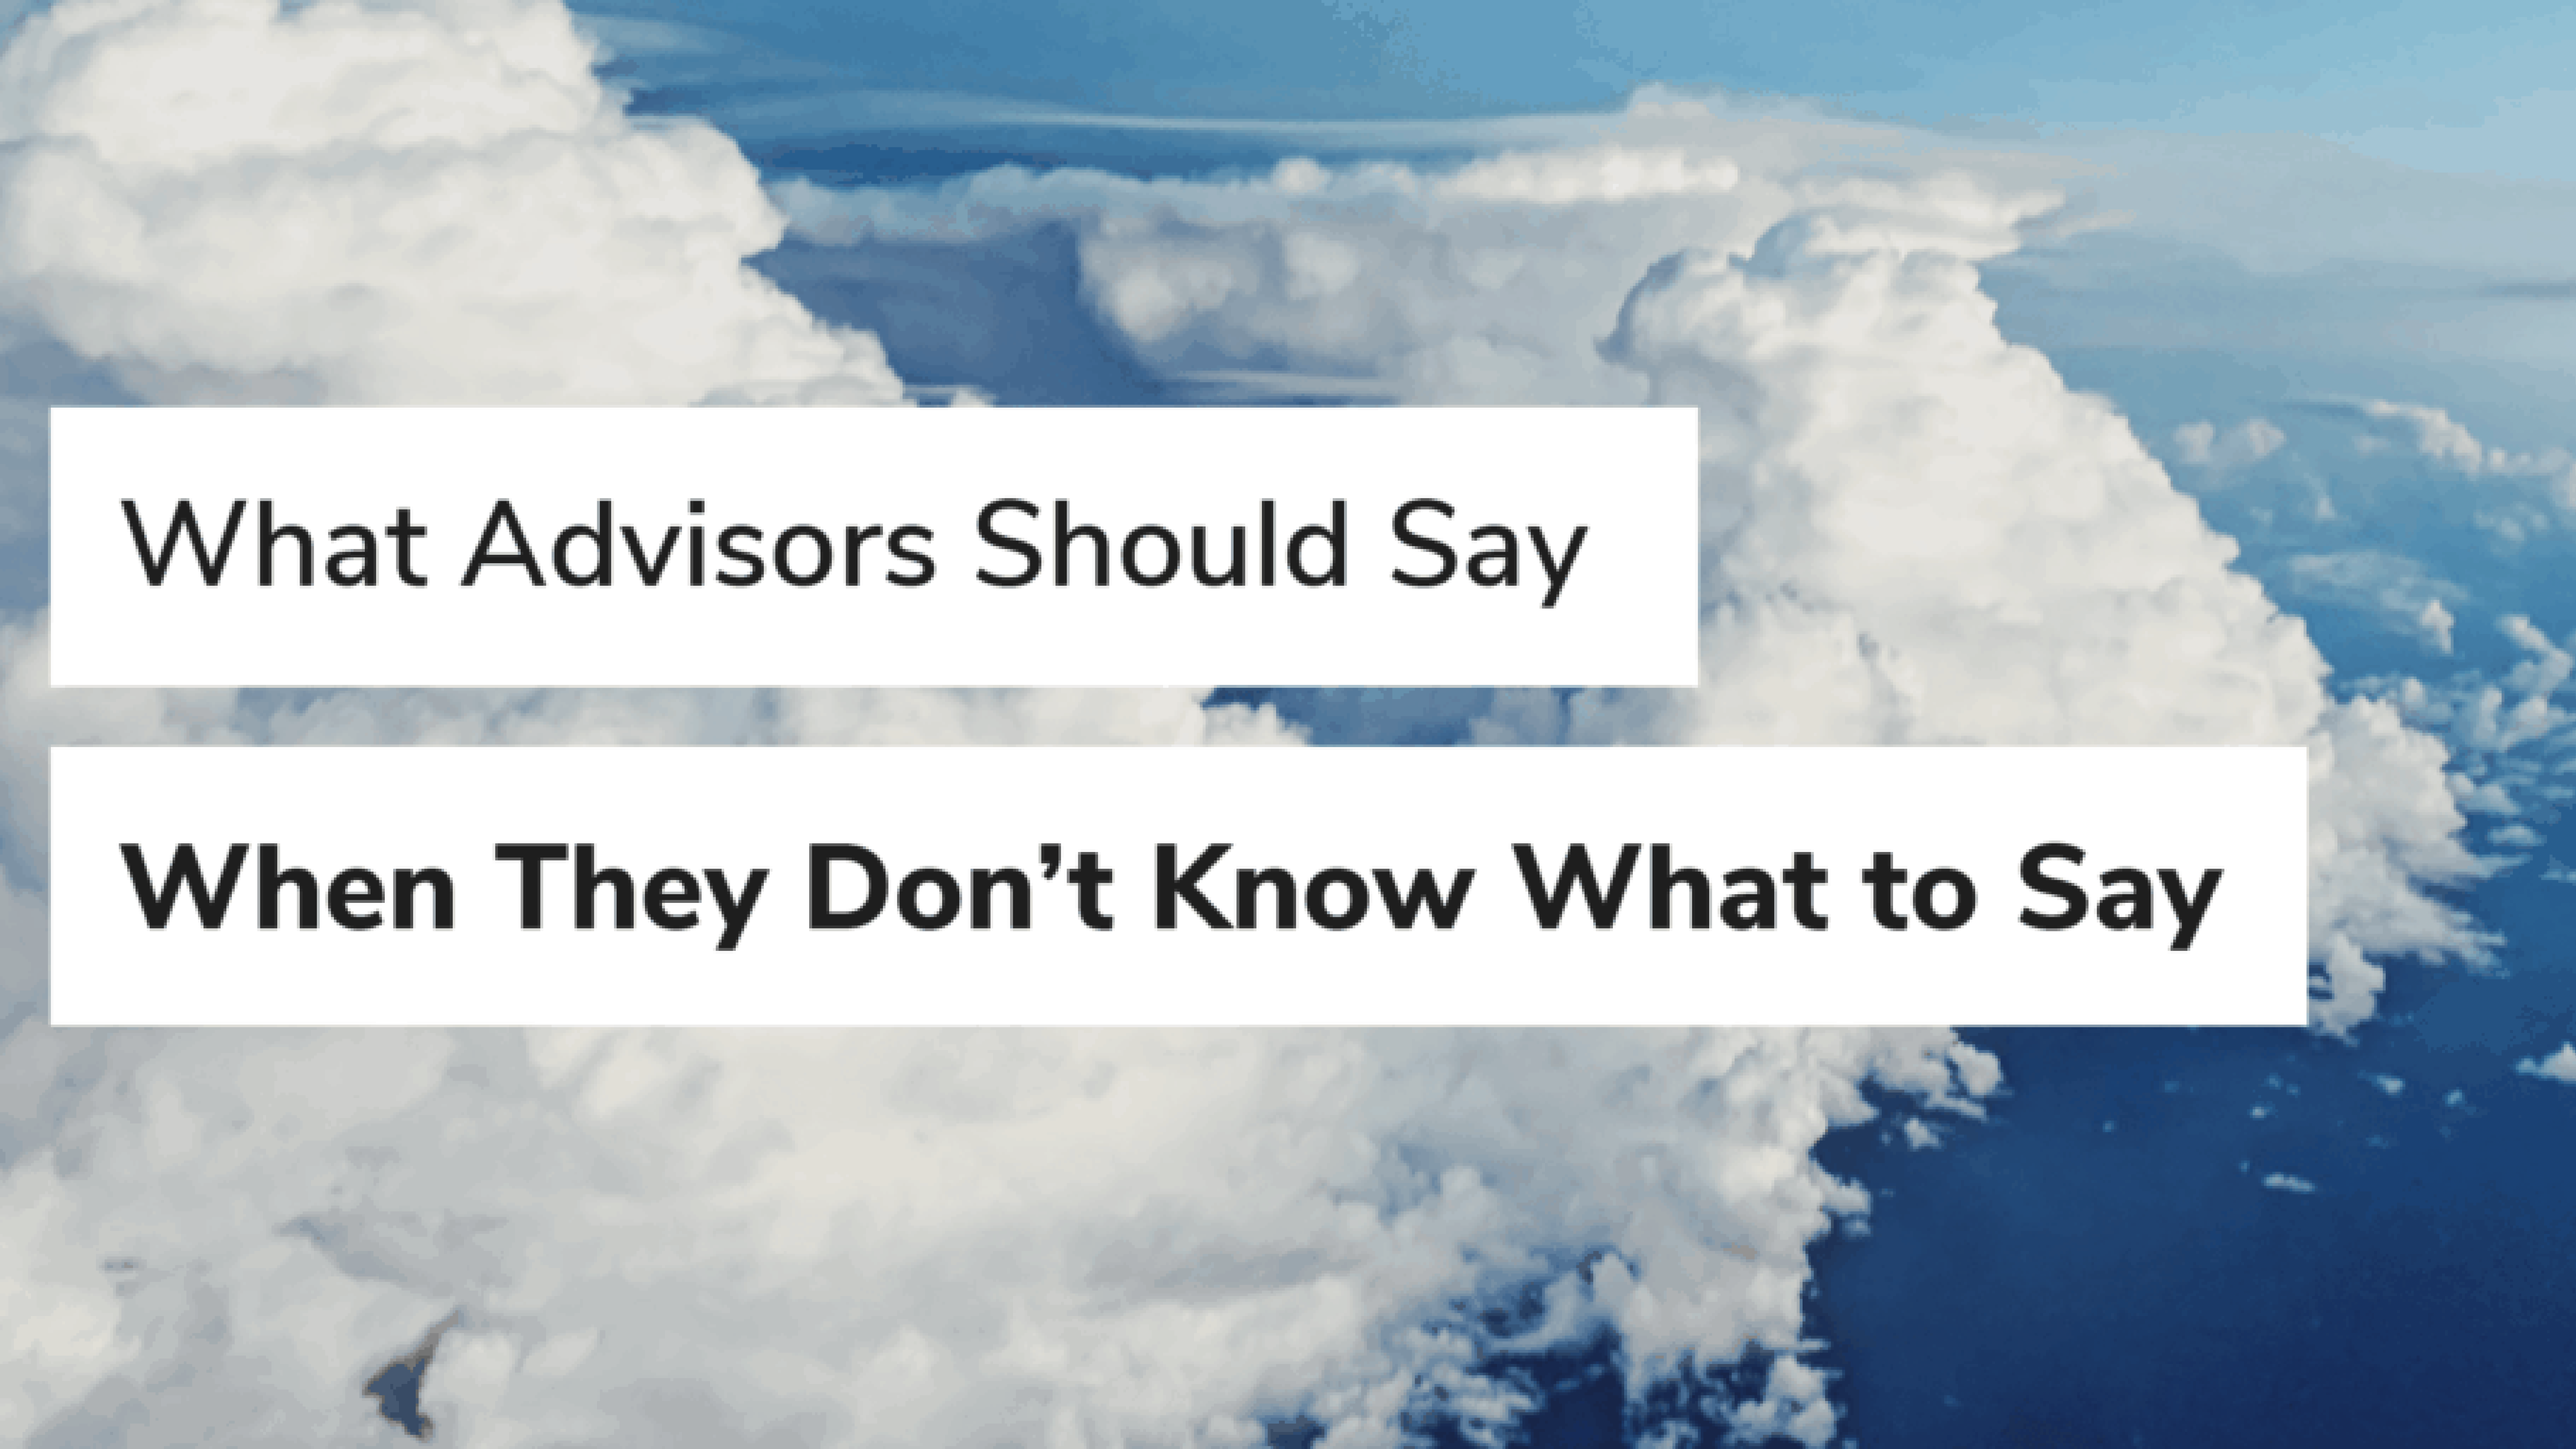 What Advisors Should Say When They Don't Know What to Say